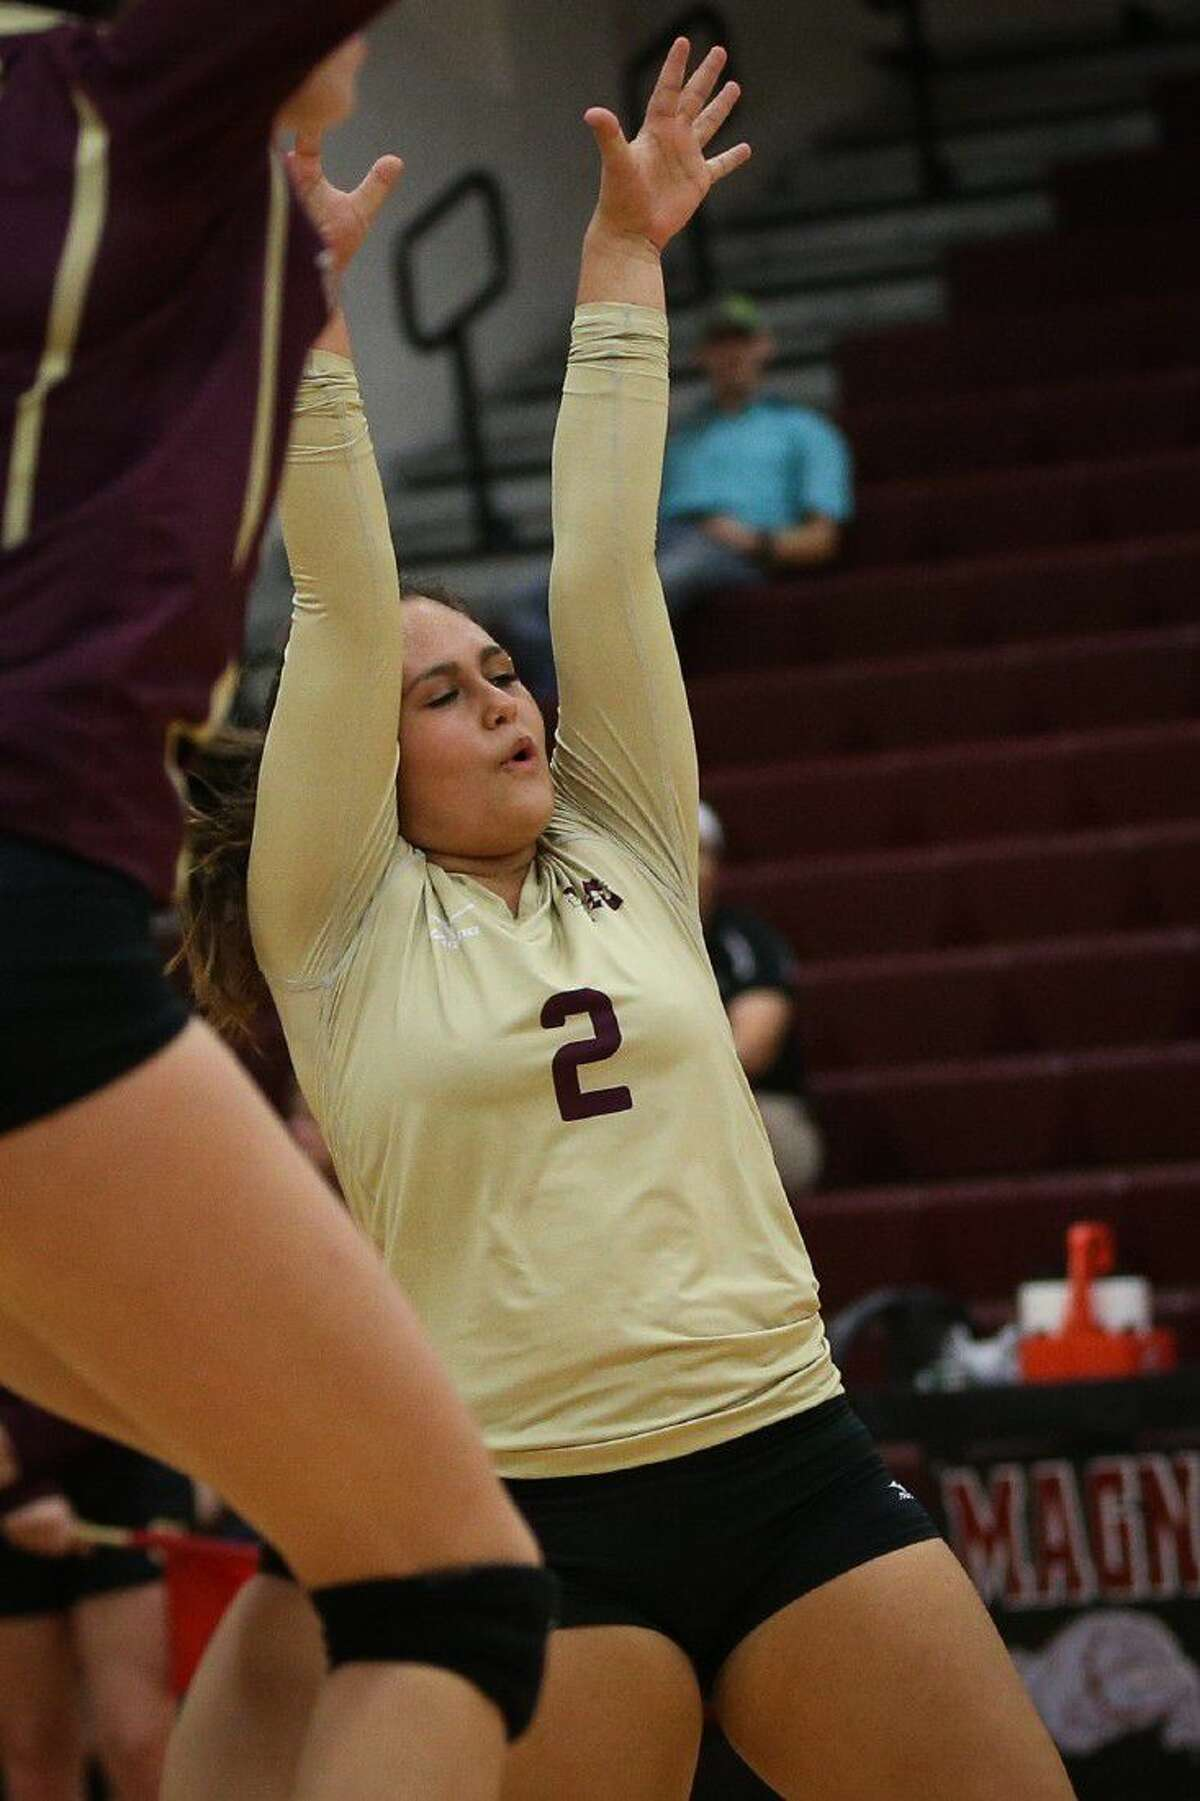 Magnolia West's Nicole Grant (2) celebrates during the varsity volleyball game against Magnolia on Tuesday at Magnolia High School.